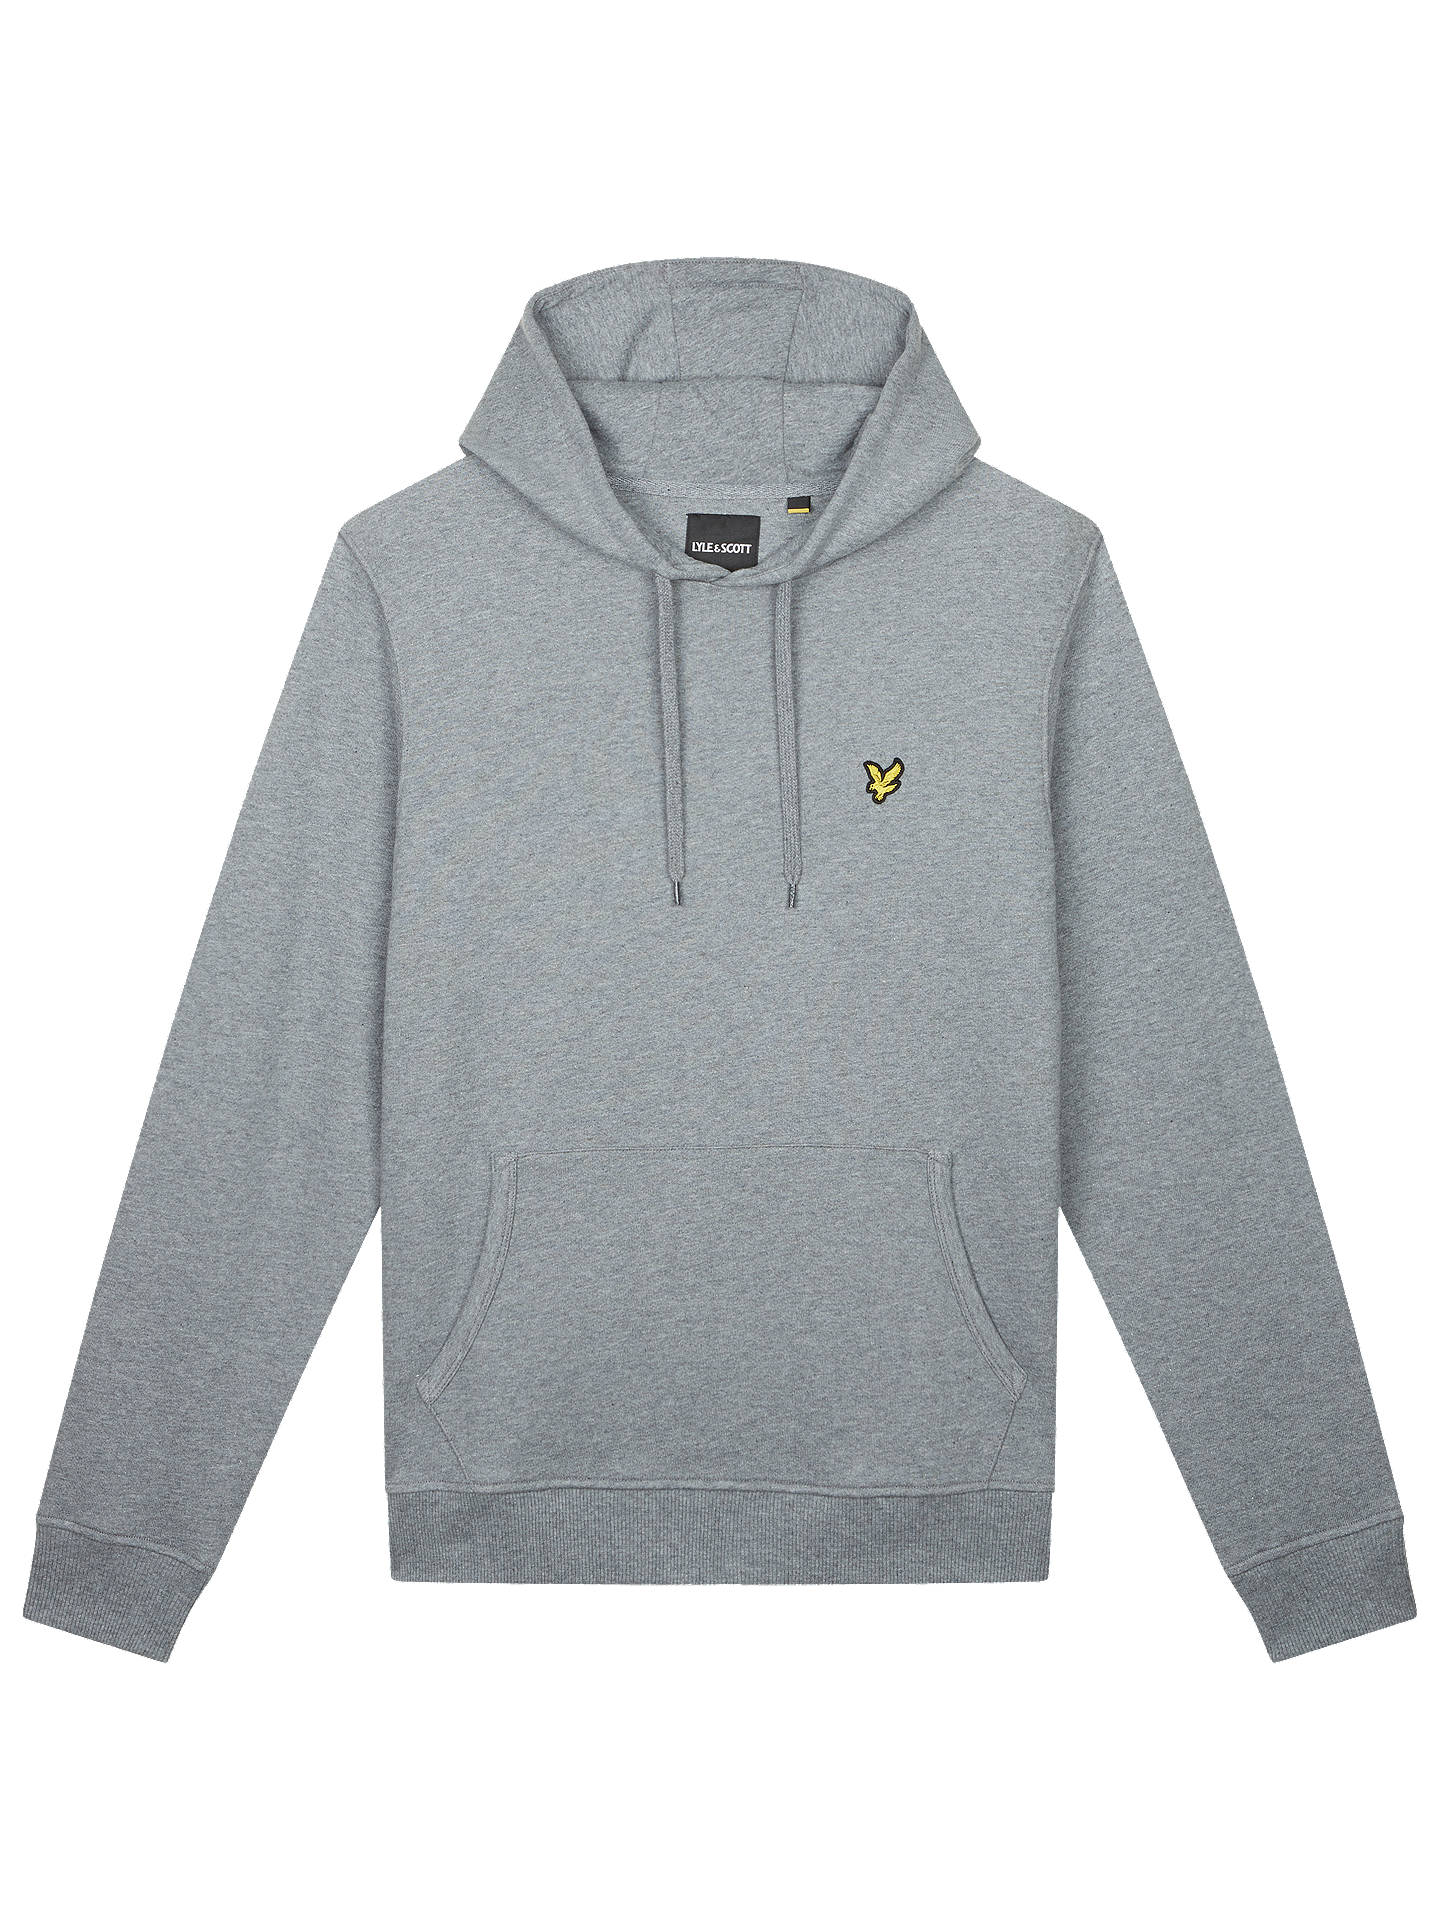 5d366f808d10 Buy Lyle & Scott Jersey Hoodie, Mid Grey Marl, L Online at johnlewis.